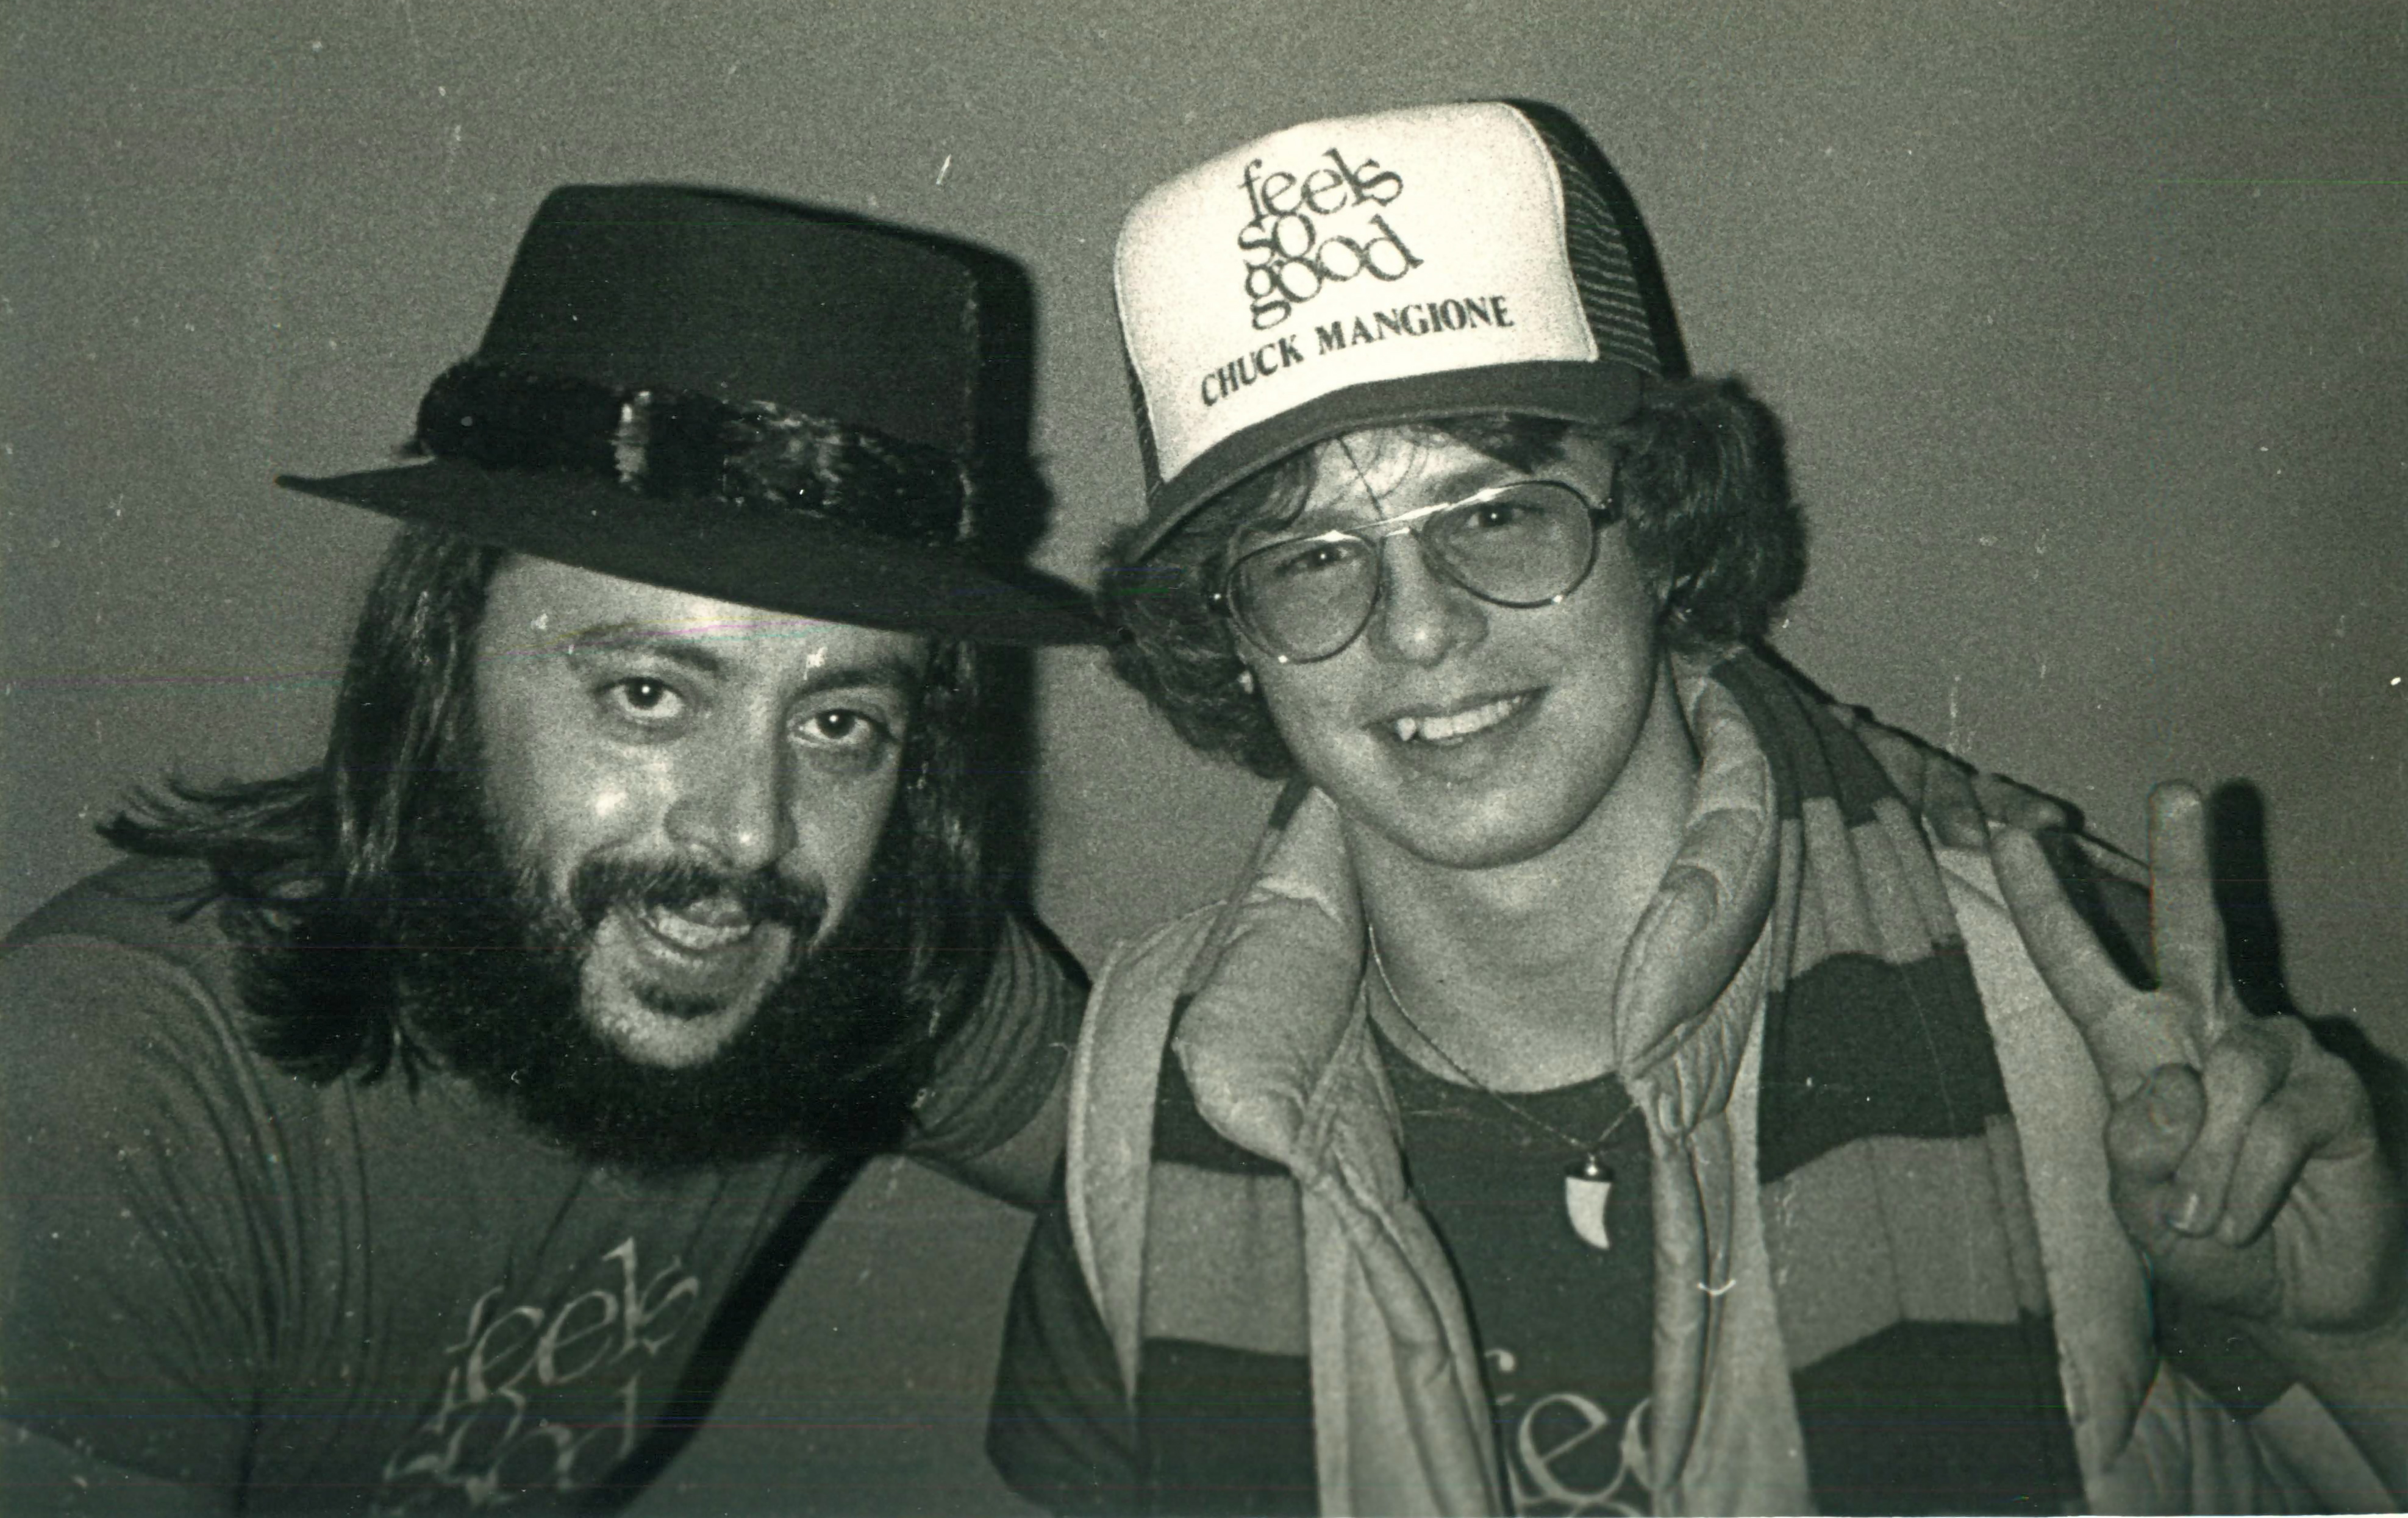 Pete Lacey & Chuck Mangione 1980-81.jpg